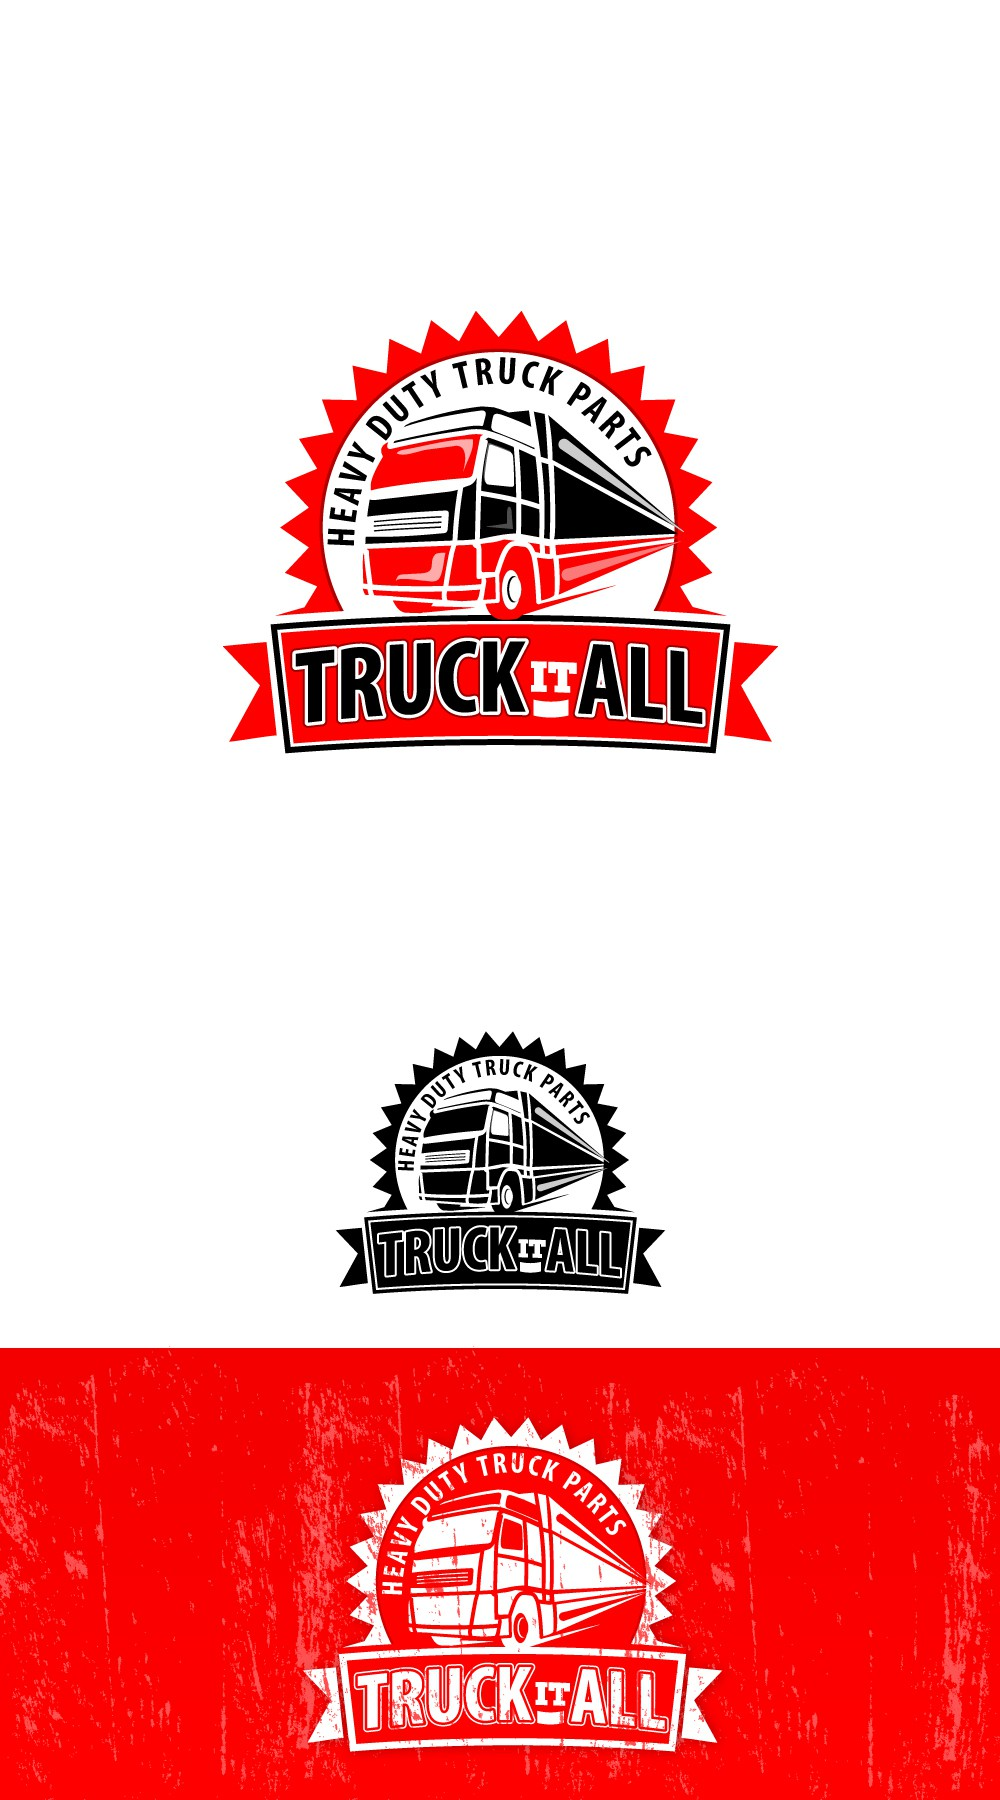 New logo wanted for TruckItAll